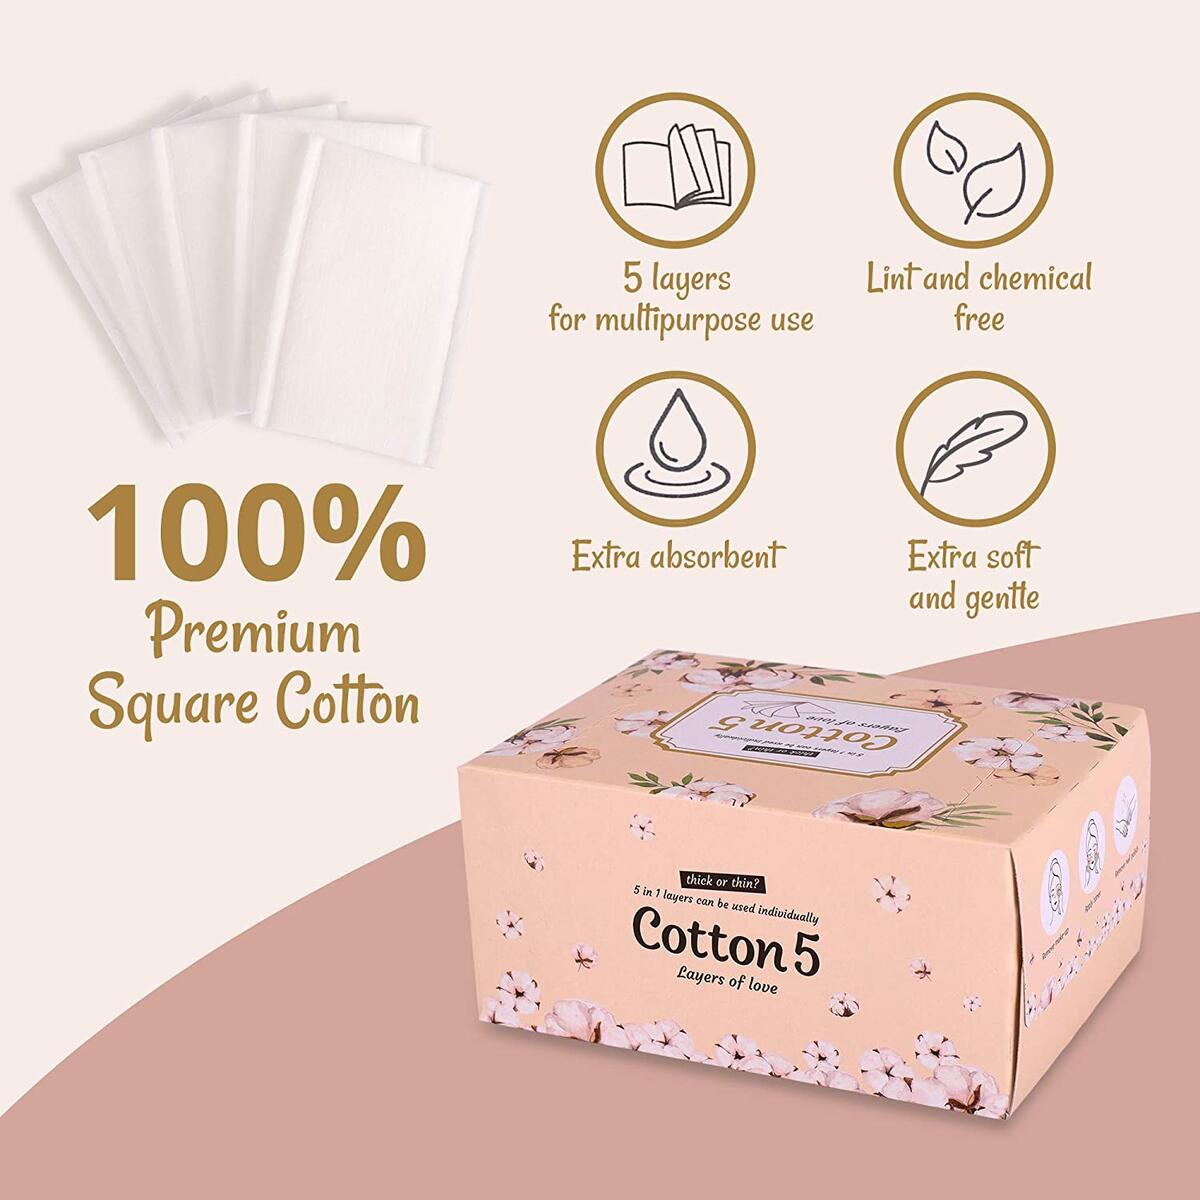 Cotton 5 - Premium Square 5 layer Cosmetic Cotton Pads for Face, Make-up and Nail Polish Remover, DIY Toner Pad/Lint Free Wipes/Suitable Sensitive Skin/ 100% Pure Cotton/Korean Skin Care Routine